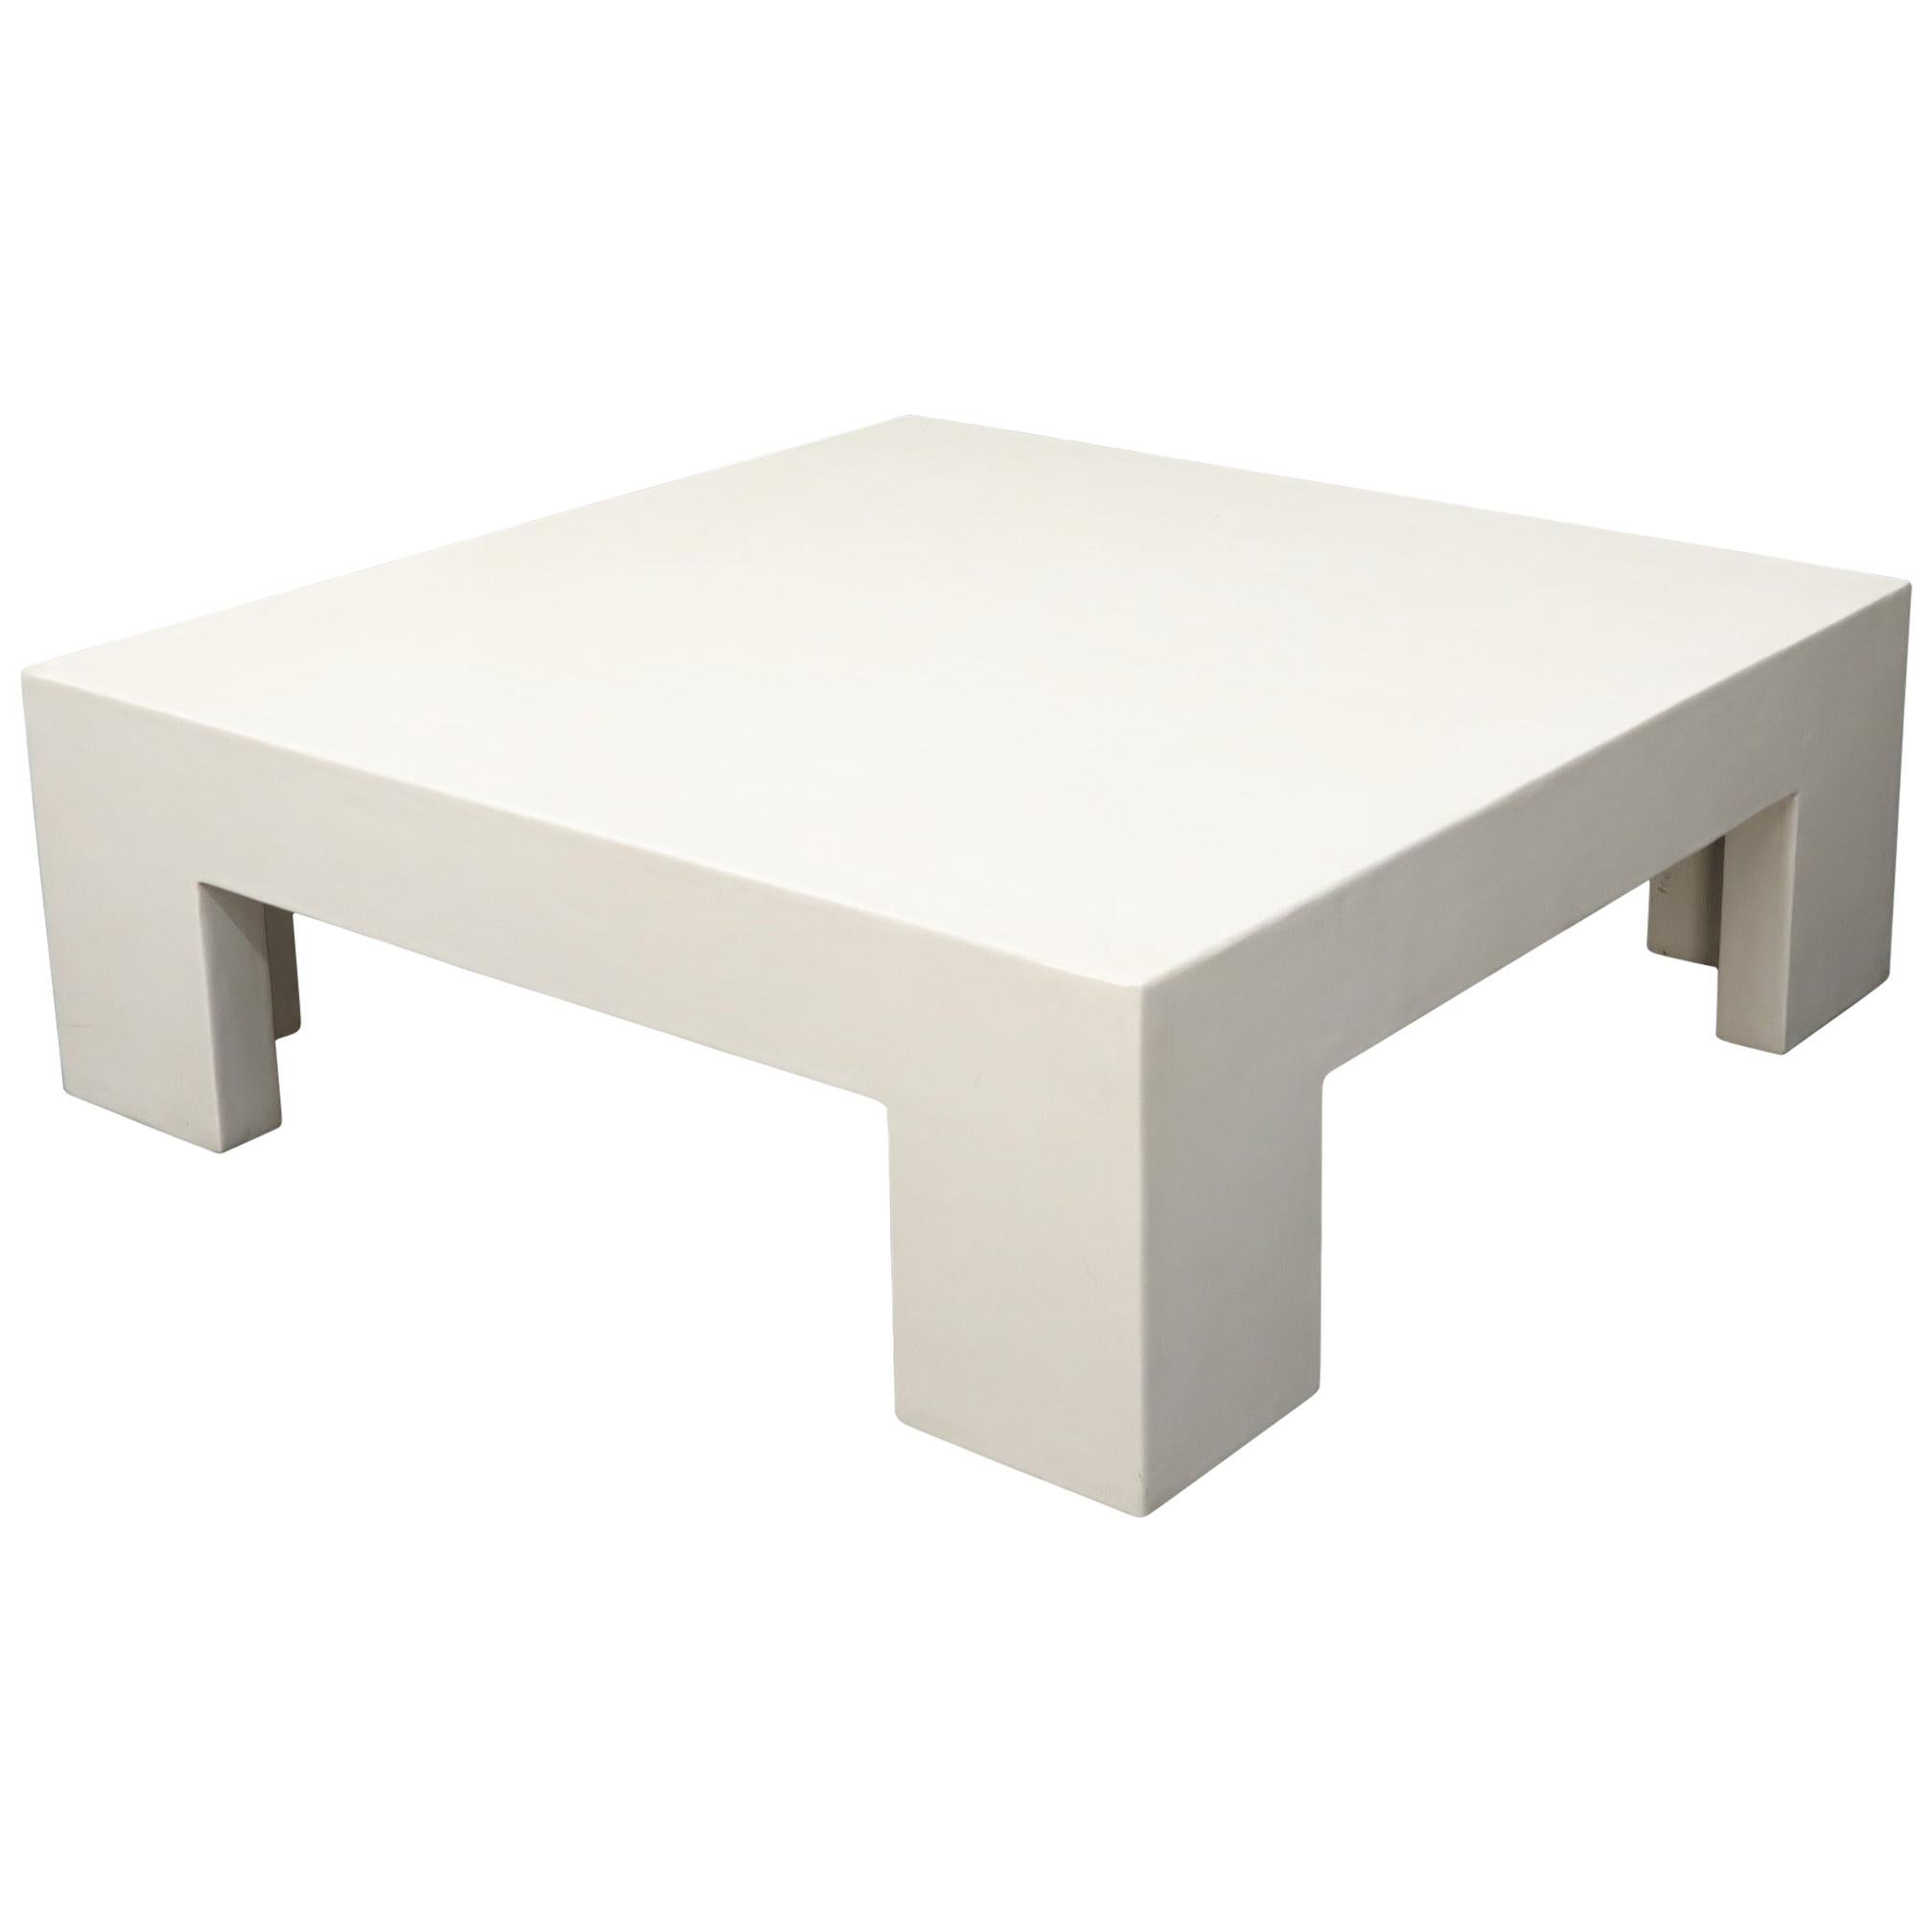 Robert Kuo Large Square White Enamel Lacquer Coffee Table